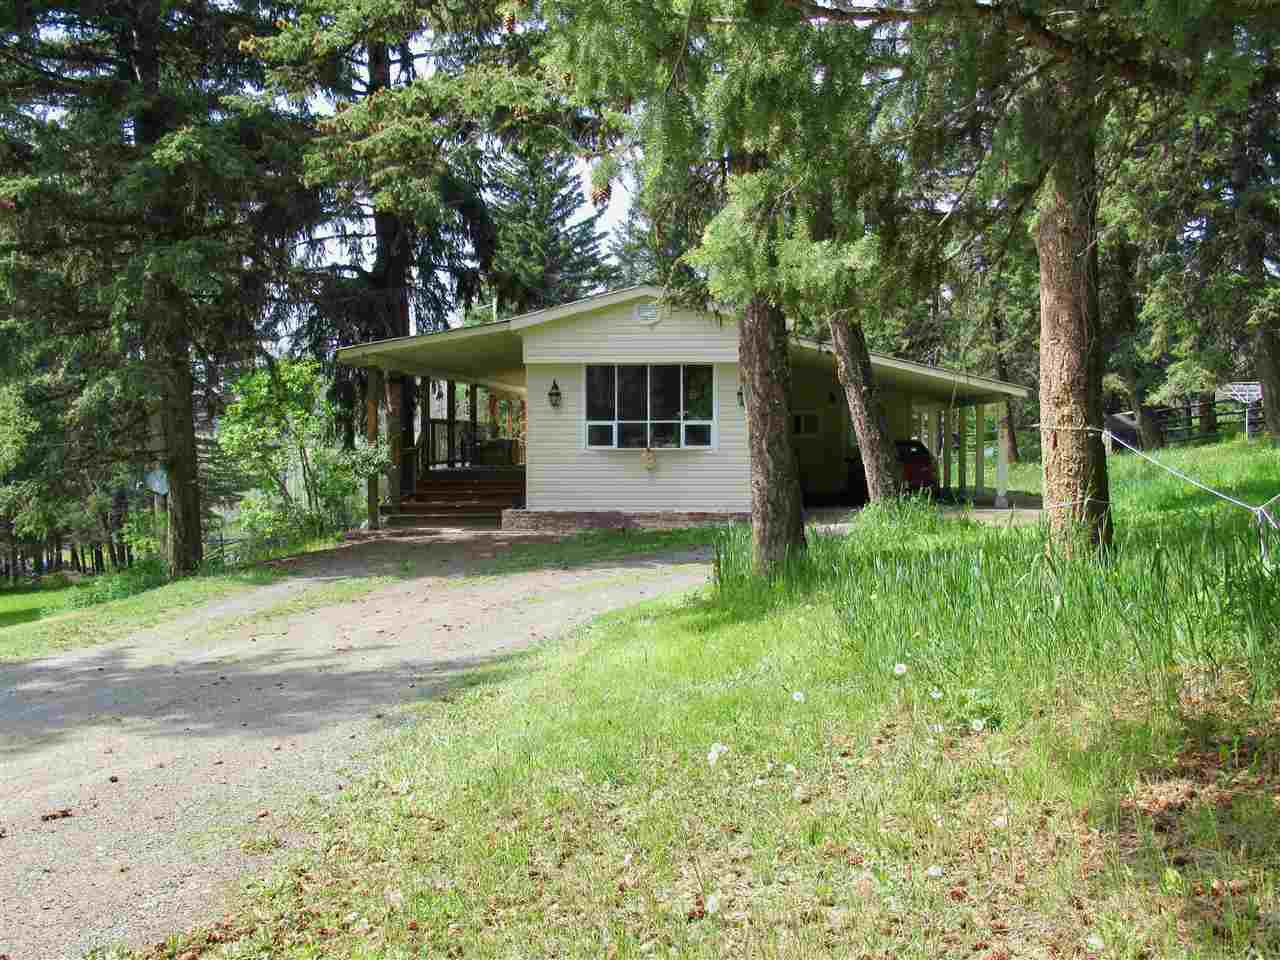 Photo 2: Photos: 1224 DESAUTEL Road in Williams Lake: Williams Lake - Rural East Manufactured Home for sale (Williams Lake (Zone 27))  : MLS®# R2376873